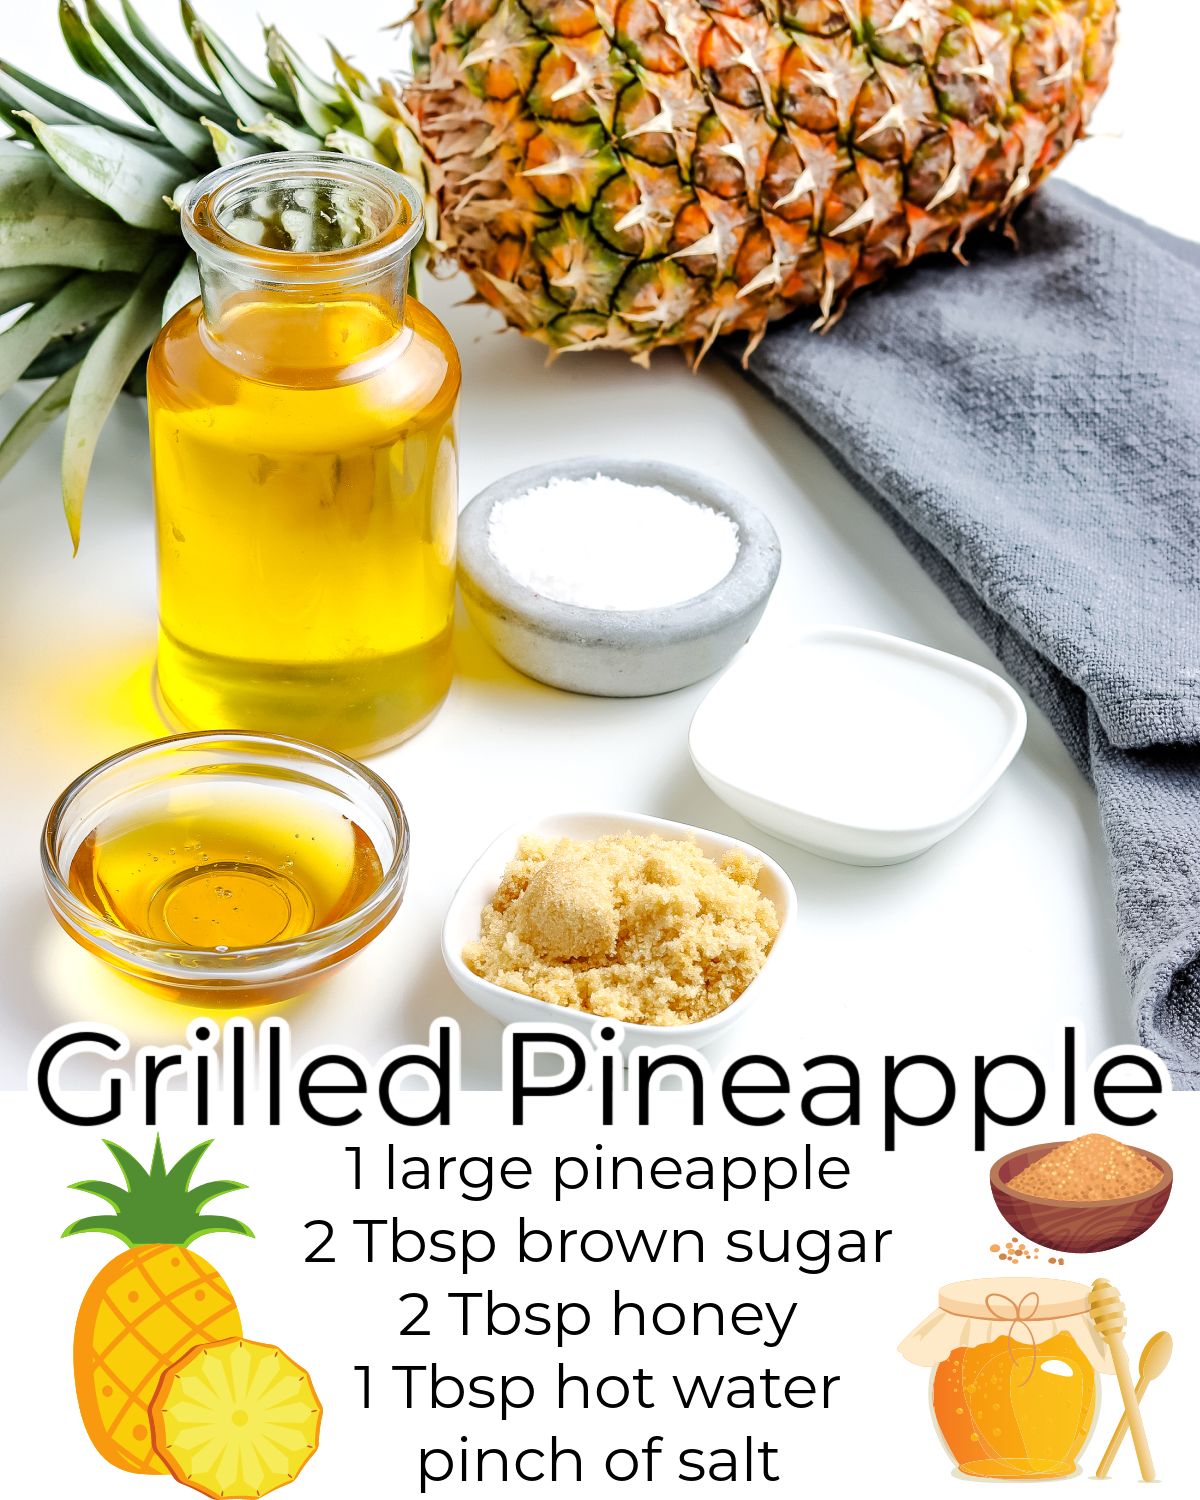 All of the ingredients needed to make this Grilled Pineapple recipe.